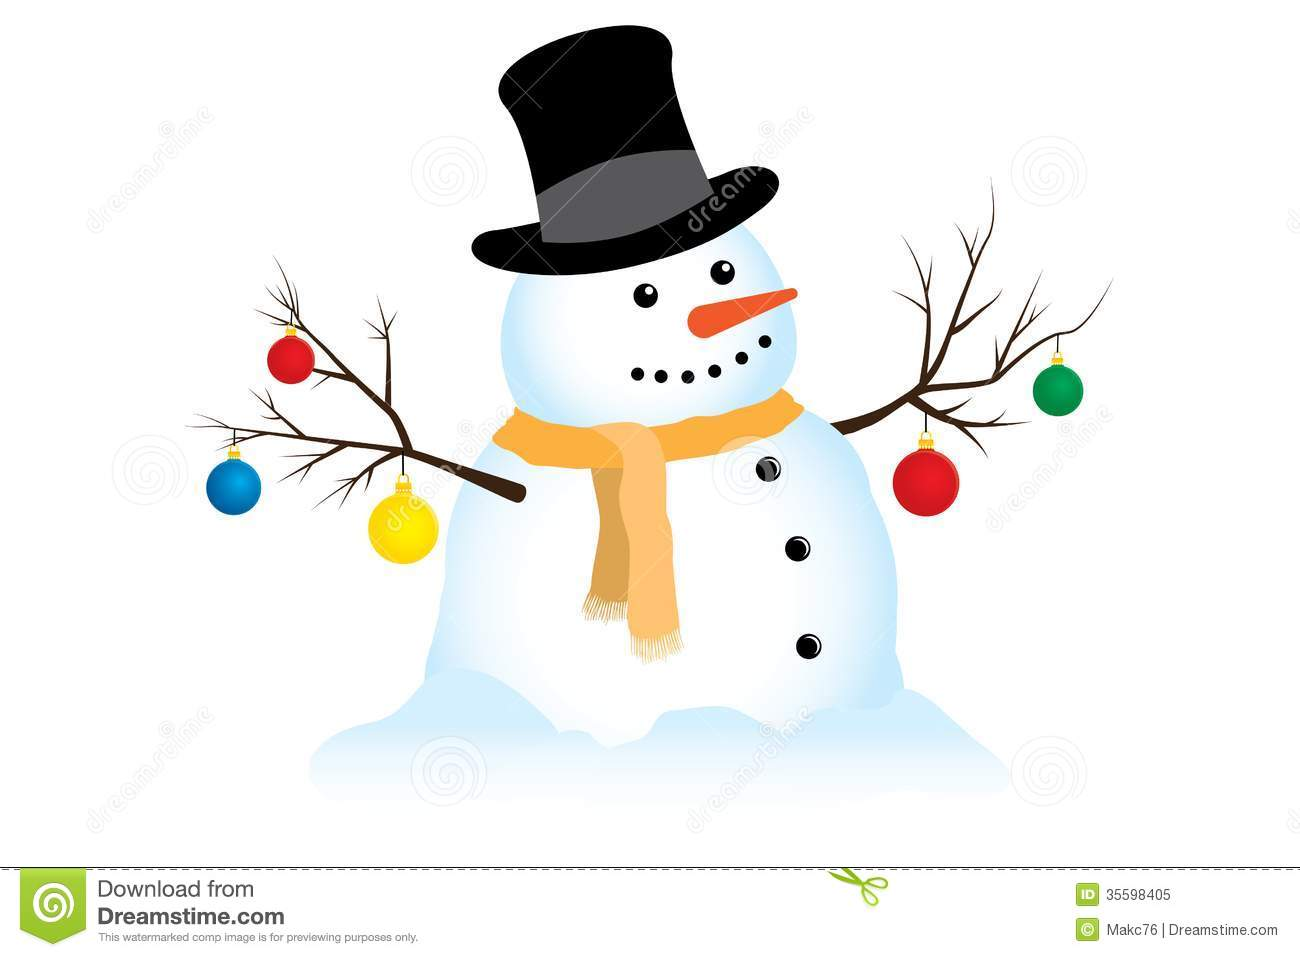 vector illustration of a smiling snowman